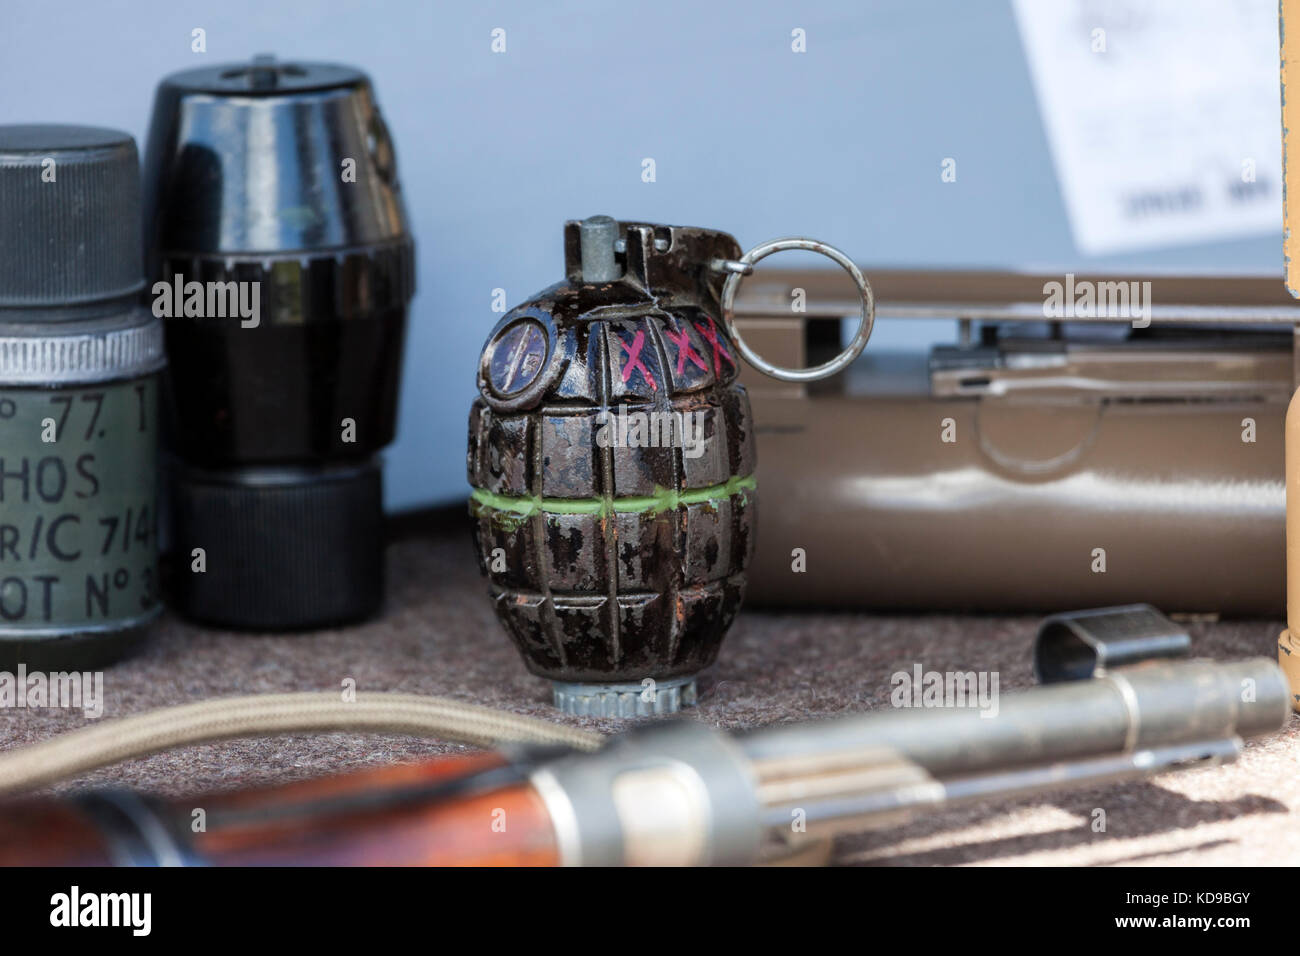 WW2 Hand Grenades and other Weapons, with a British Hand Grenade (Mills Bomb) Centre Pic, UK. - Stock Image